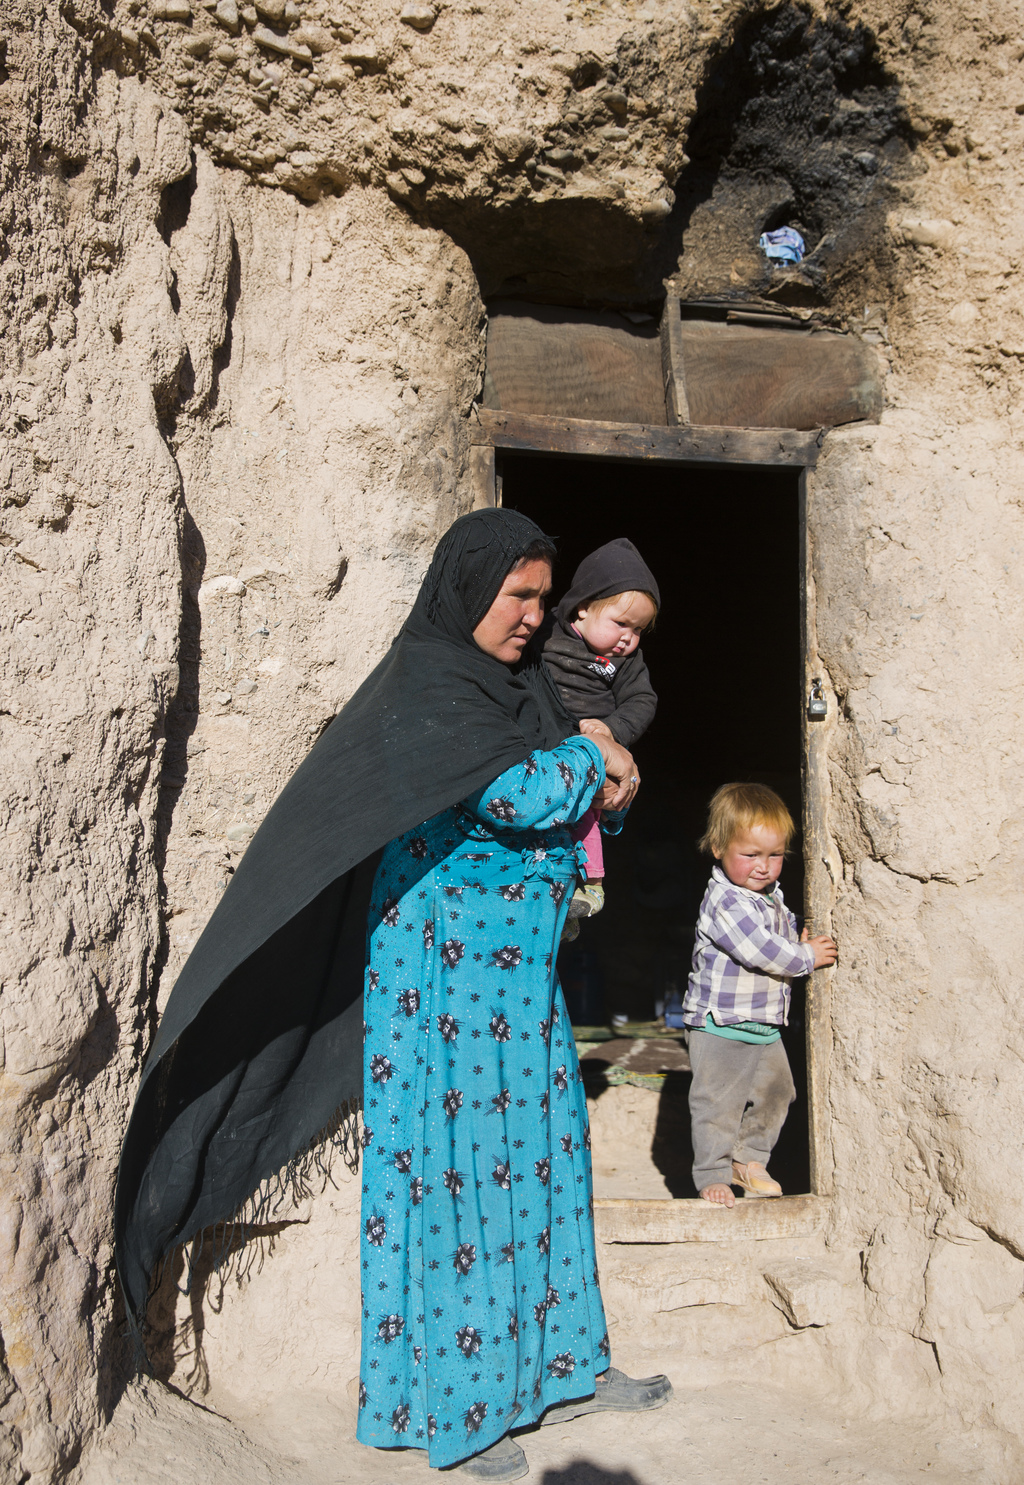 In this Monday, Nov. 7, 2016 photo, an Afghan mother, Marzia, 30, stands at the entrance of her cave after an interview with the Associ...